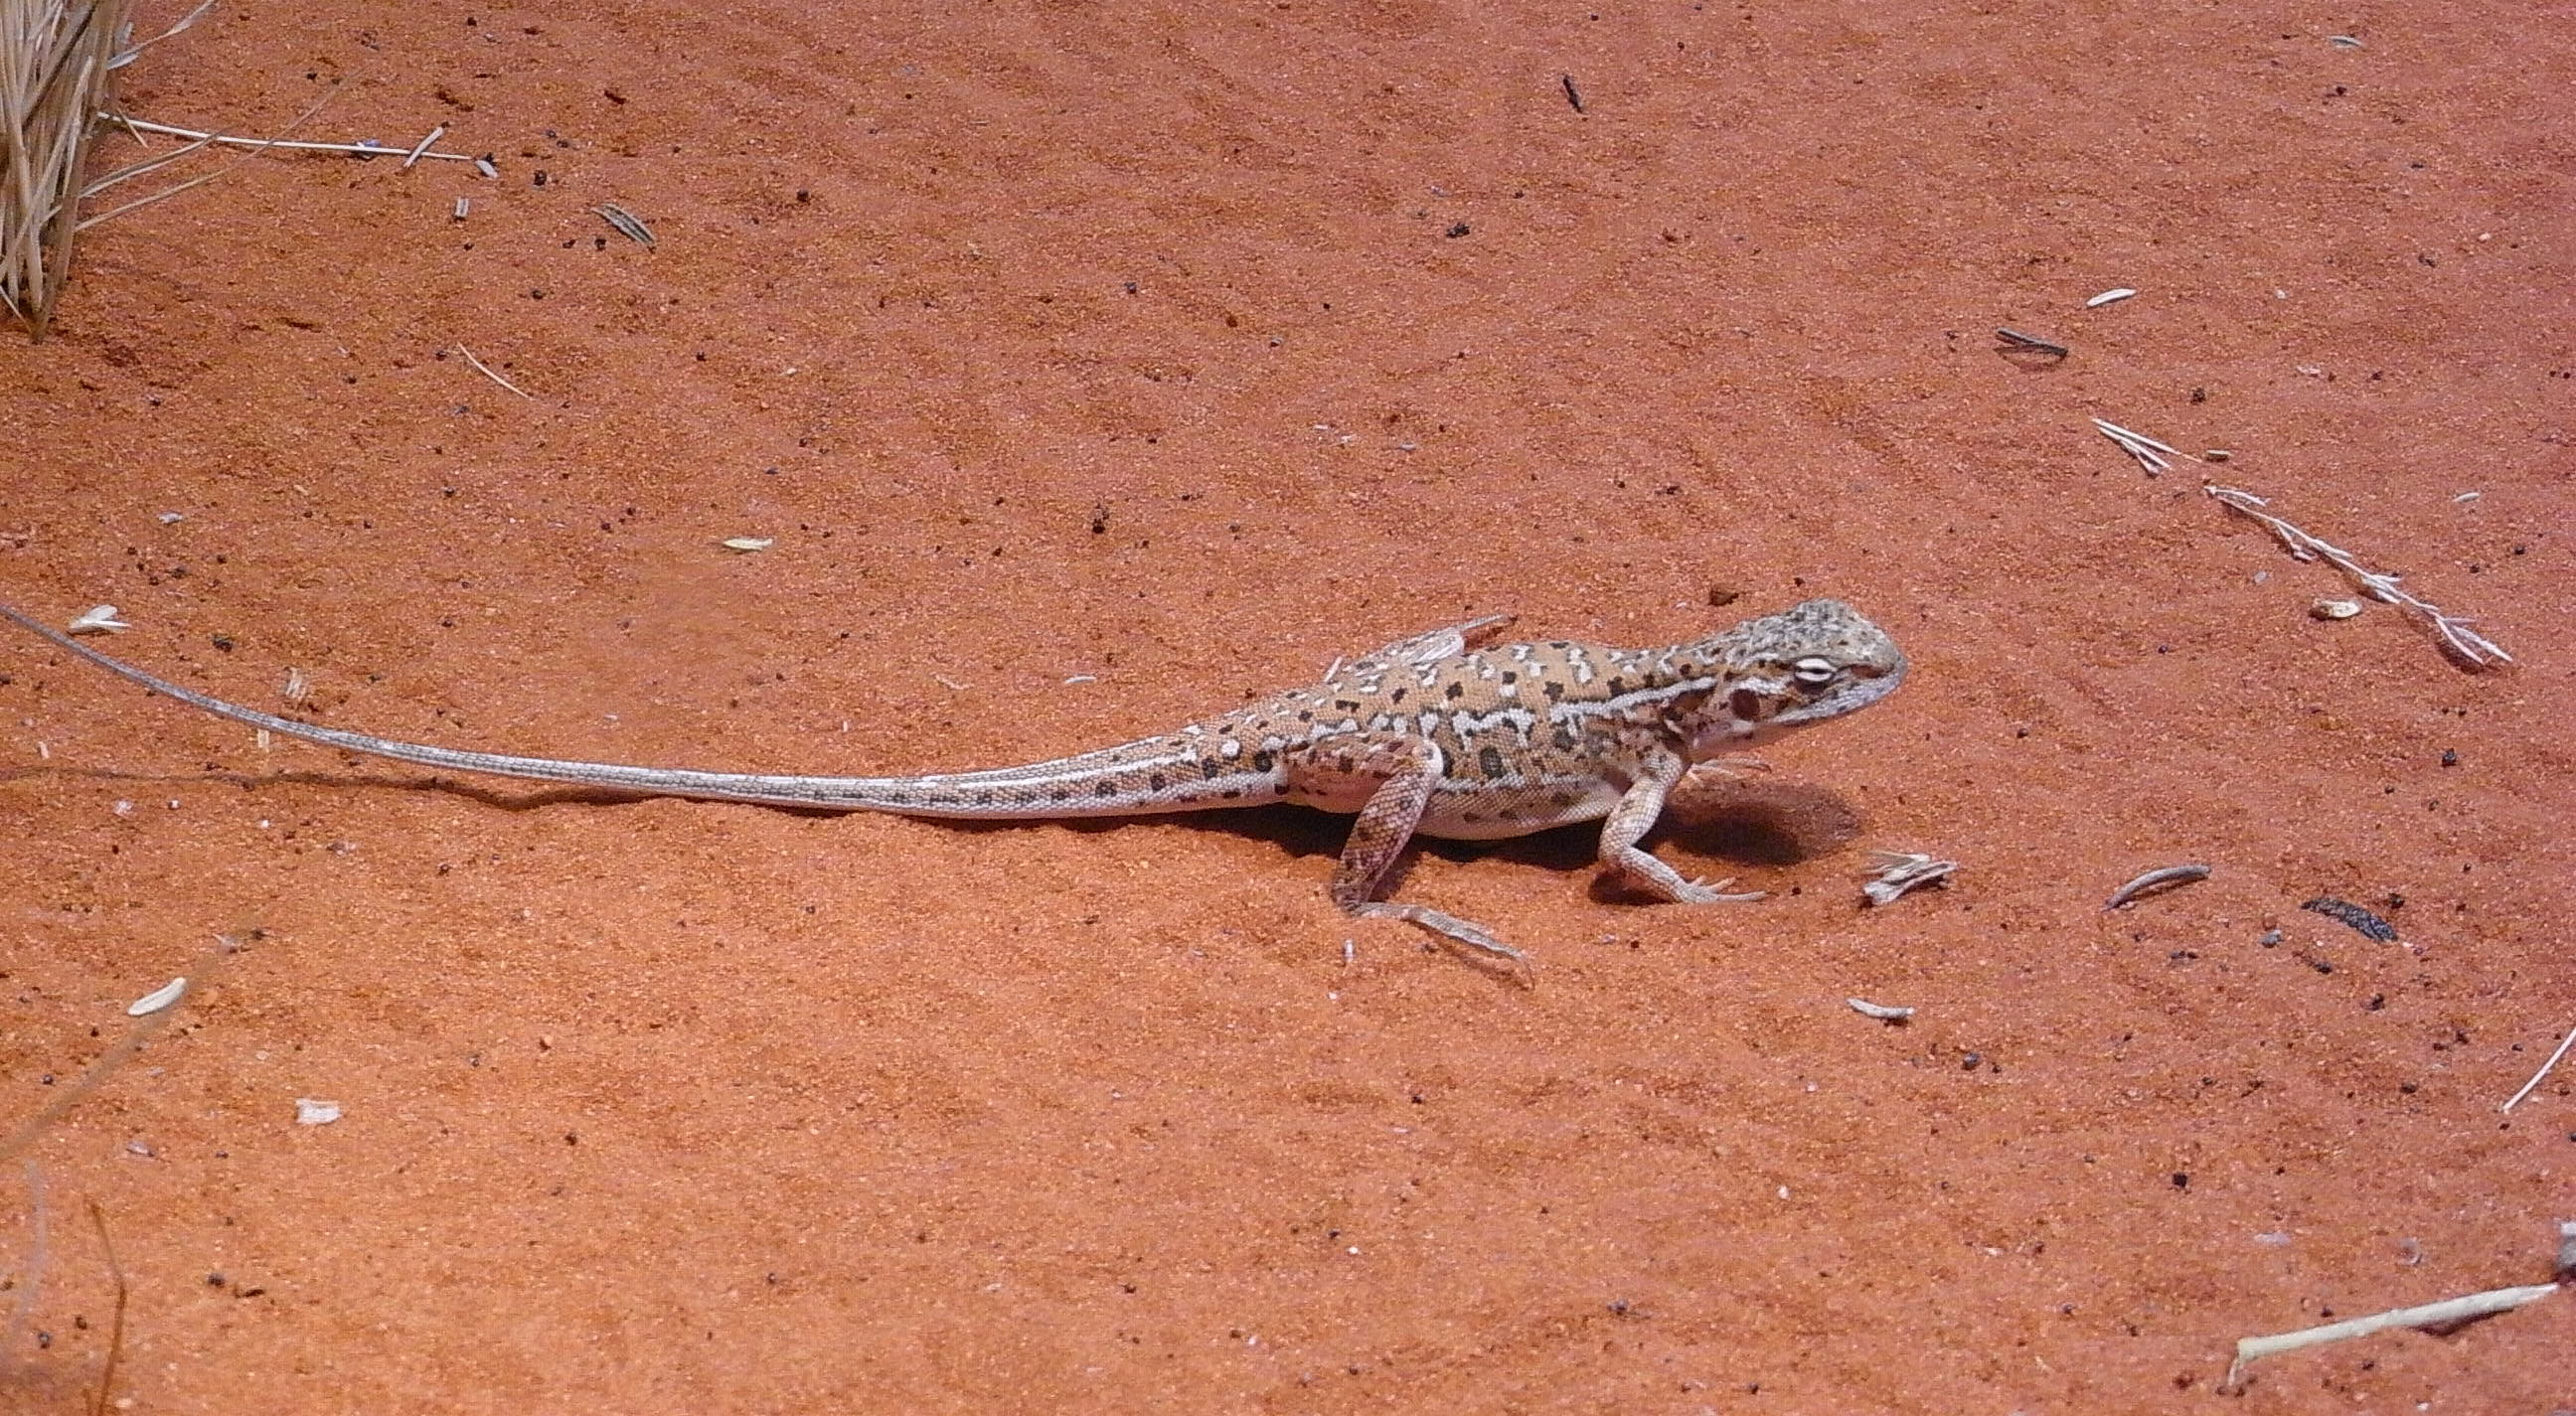 Lizard on red sand photo